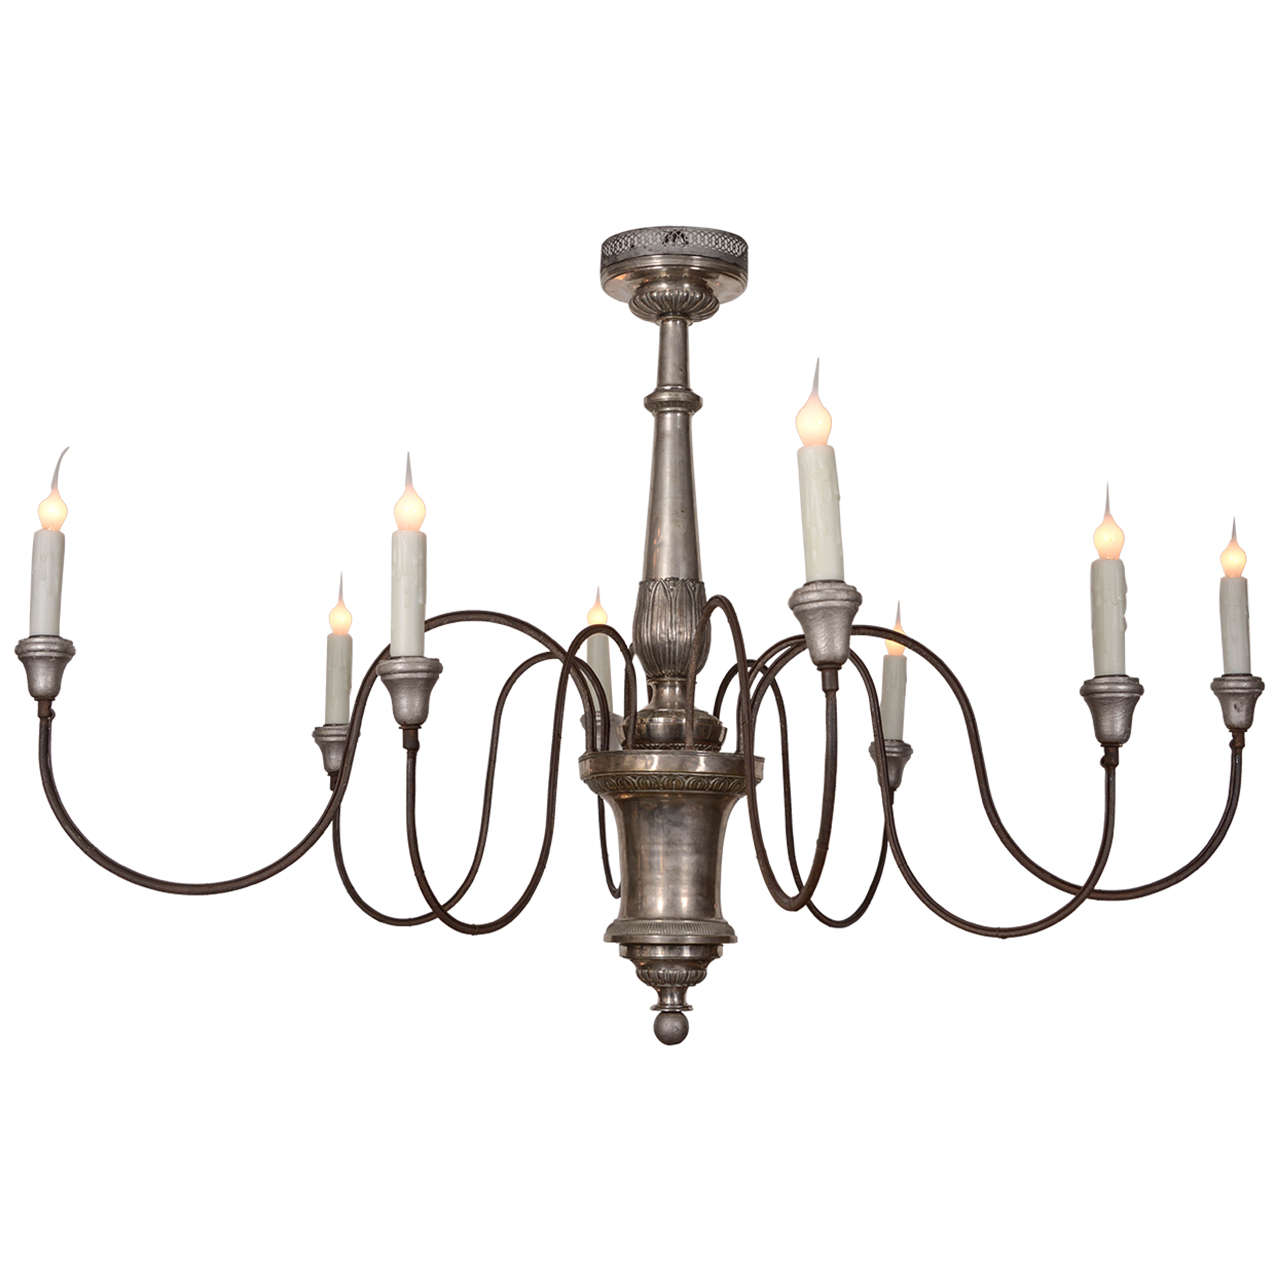 Chandelier Metal: Italian Silver Gilt Metal Chandelier At 1stdibs,Lighting